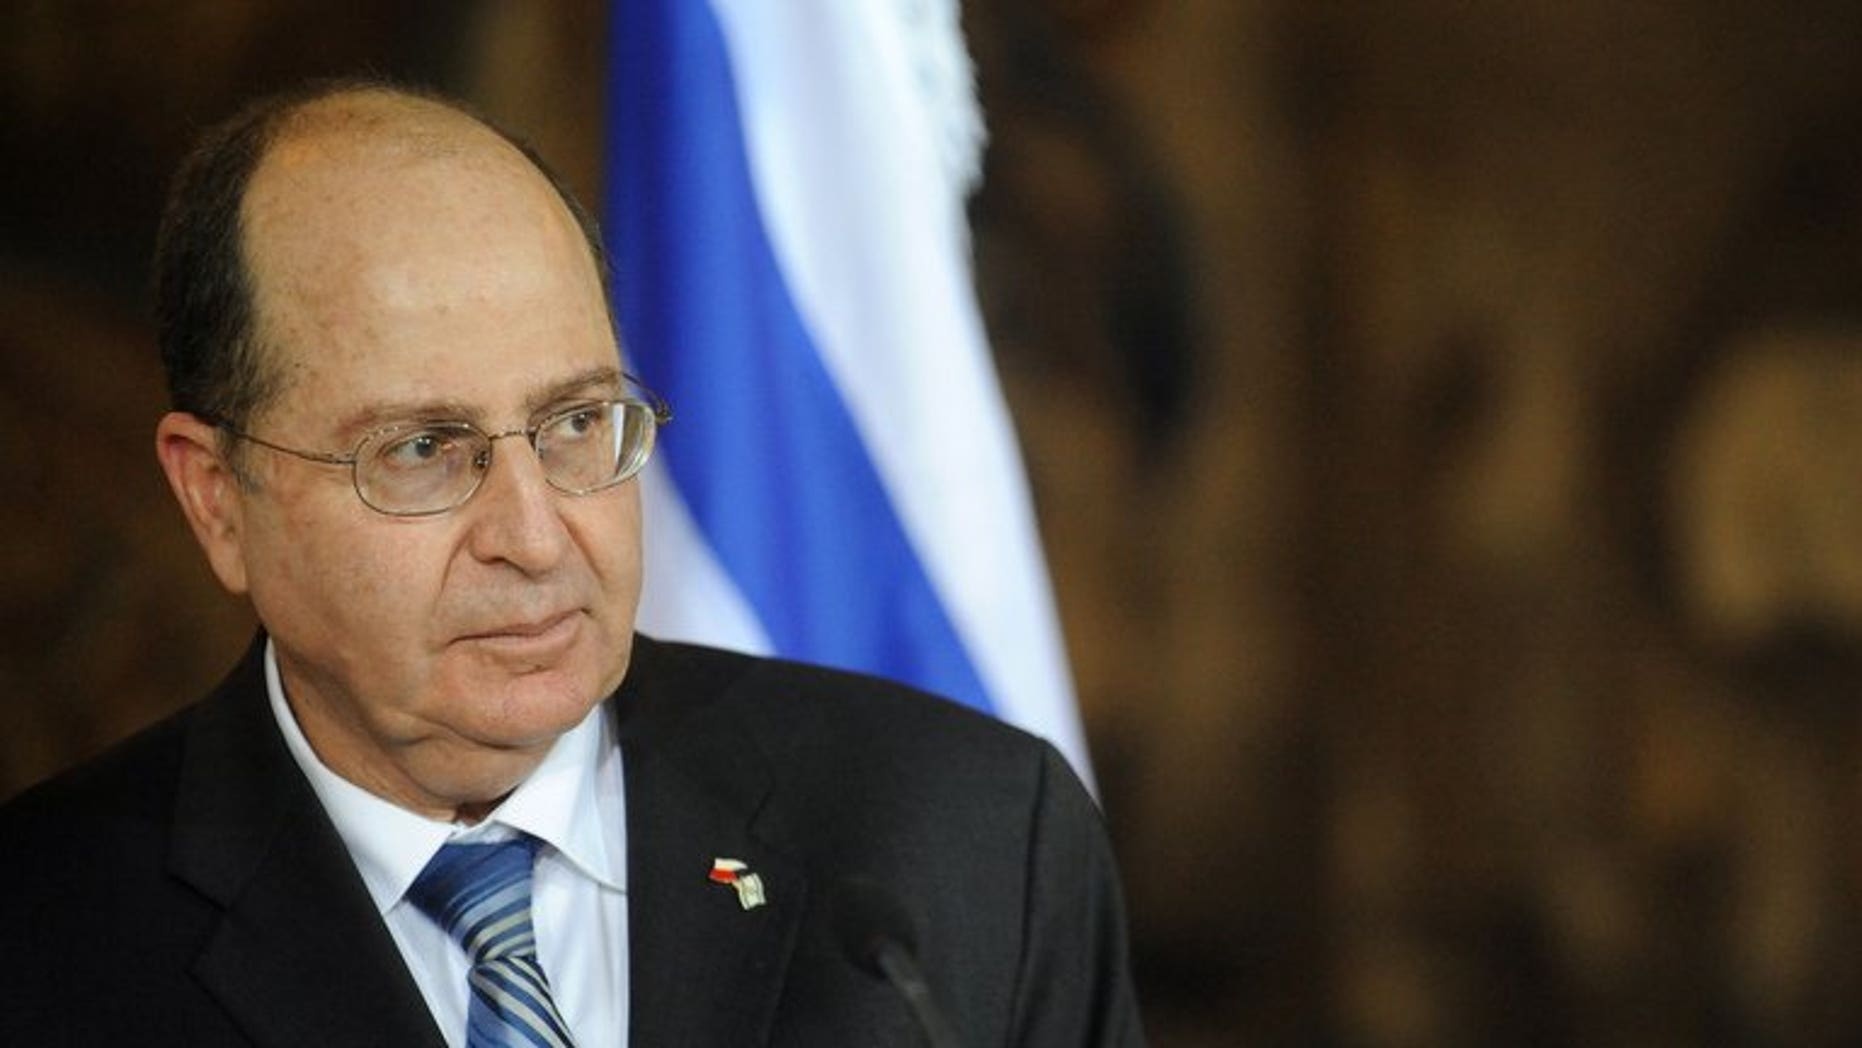 """Israel's Defence Minister Moshe Yaalon delivers a speech on November 24, 2011. Israel's military is set to change to increase its """"technological advantage"""" over other regional armies, Yaalon said on Thursday, while cutting away at costly traditional field forces."""